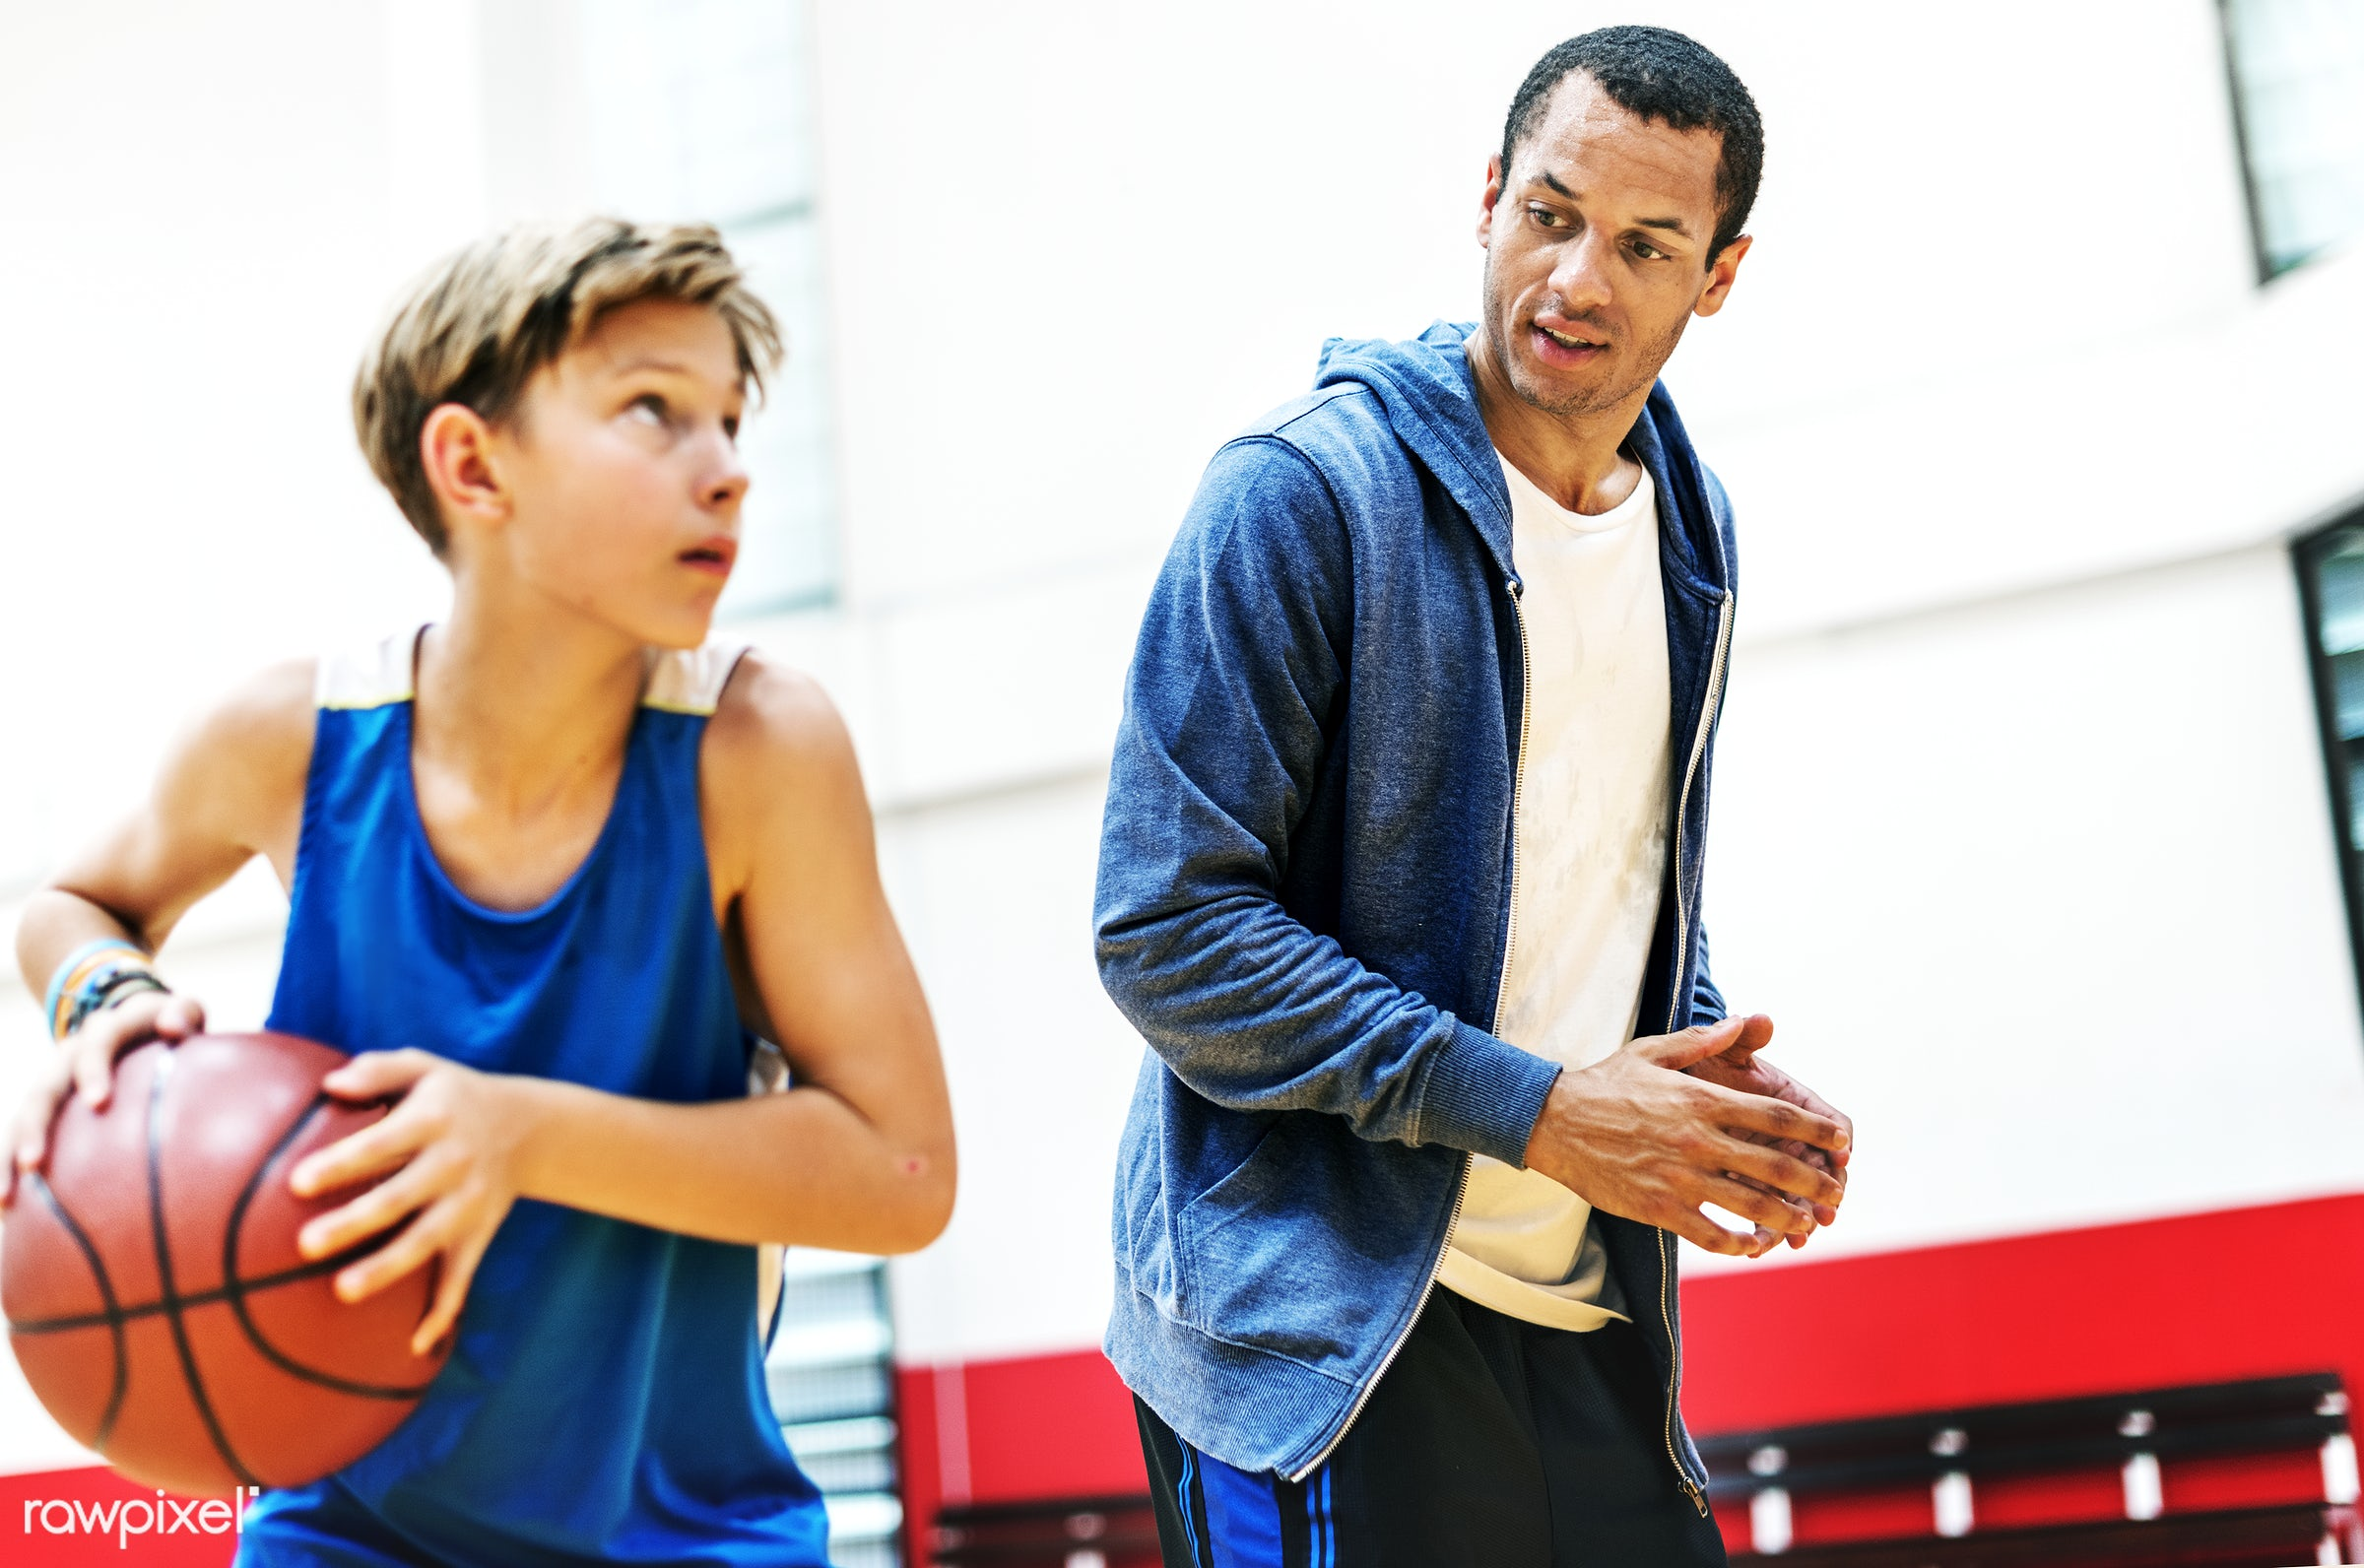 coach, activity, basketball, boy, caucasian, coaching, court, exercise, friends, game, man, play, player, practice, sport,...